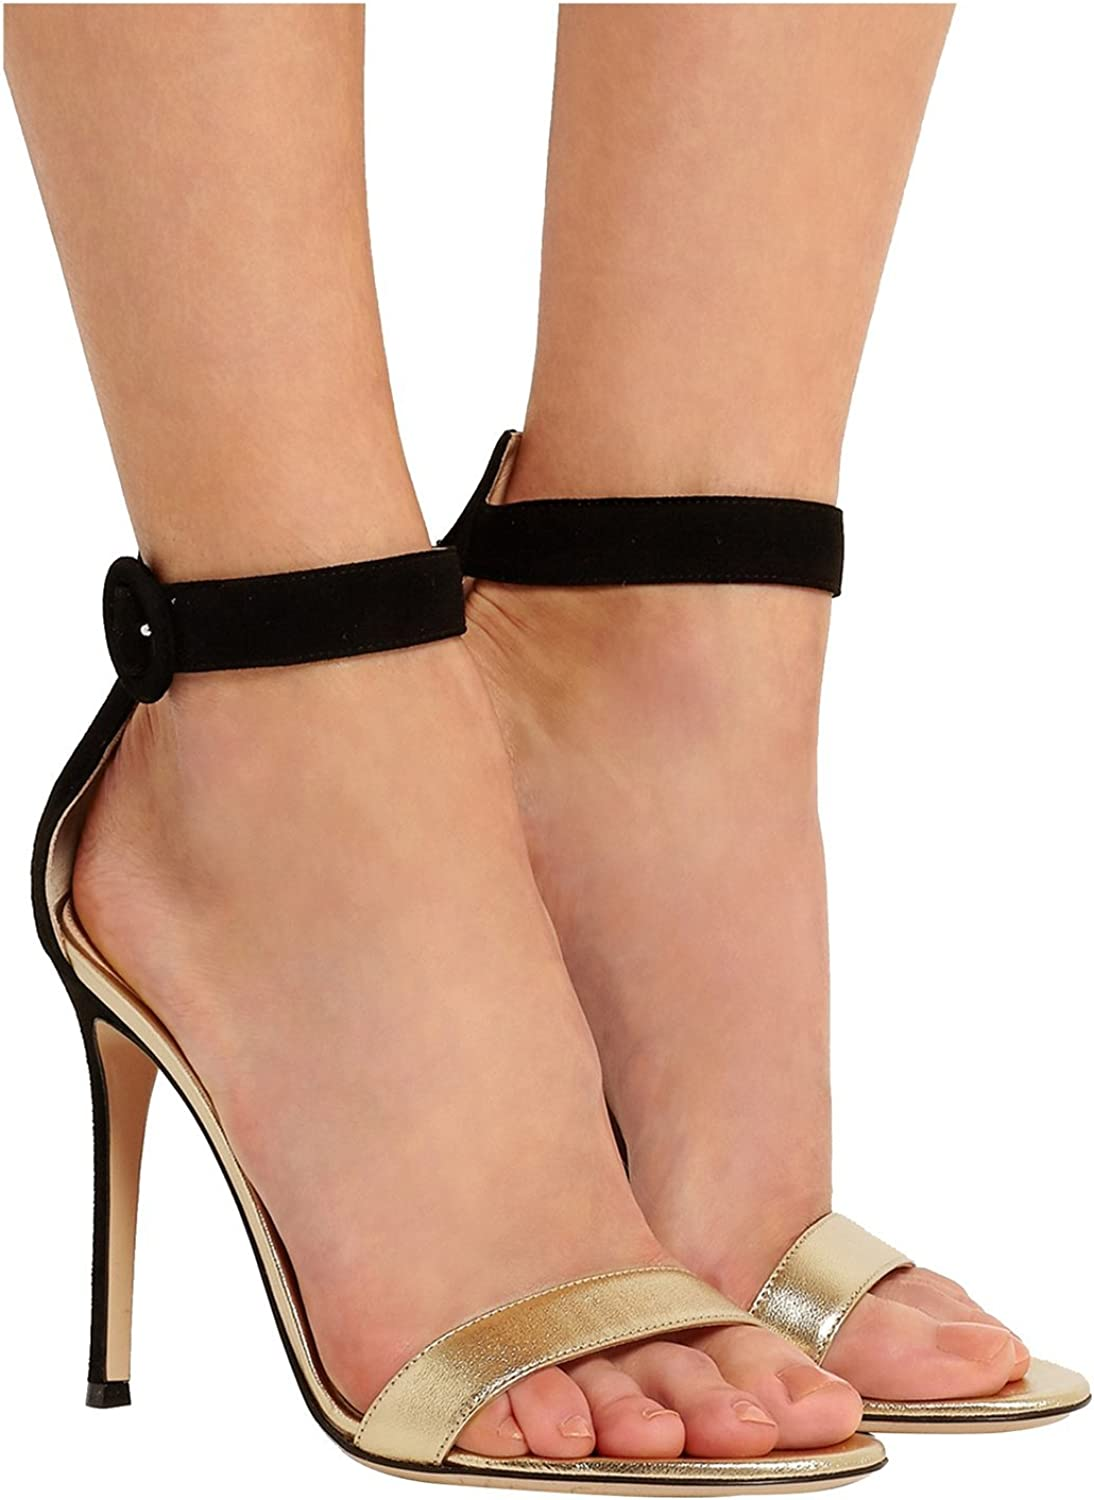 Kevin Fashion KLSDN233 Women's High Heel Suede Club Party Evening Sandals